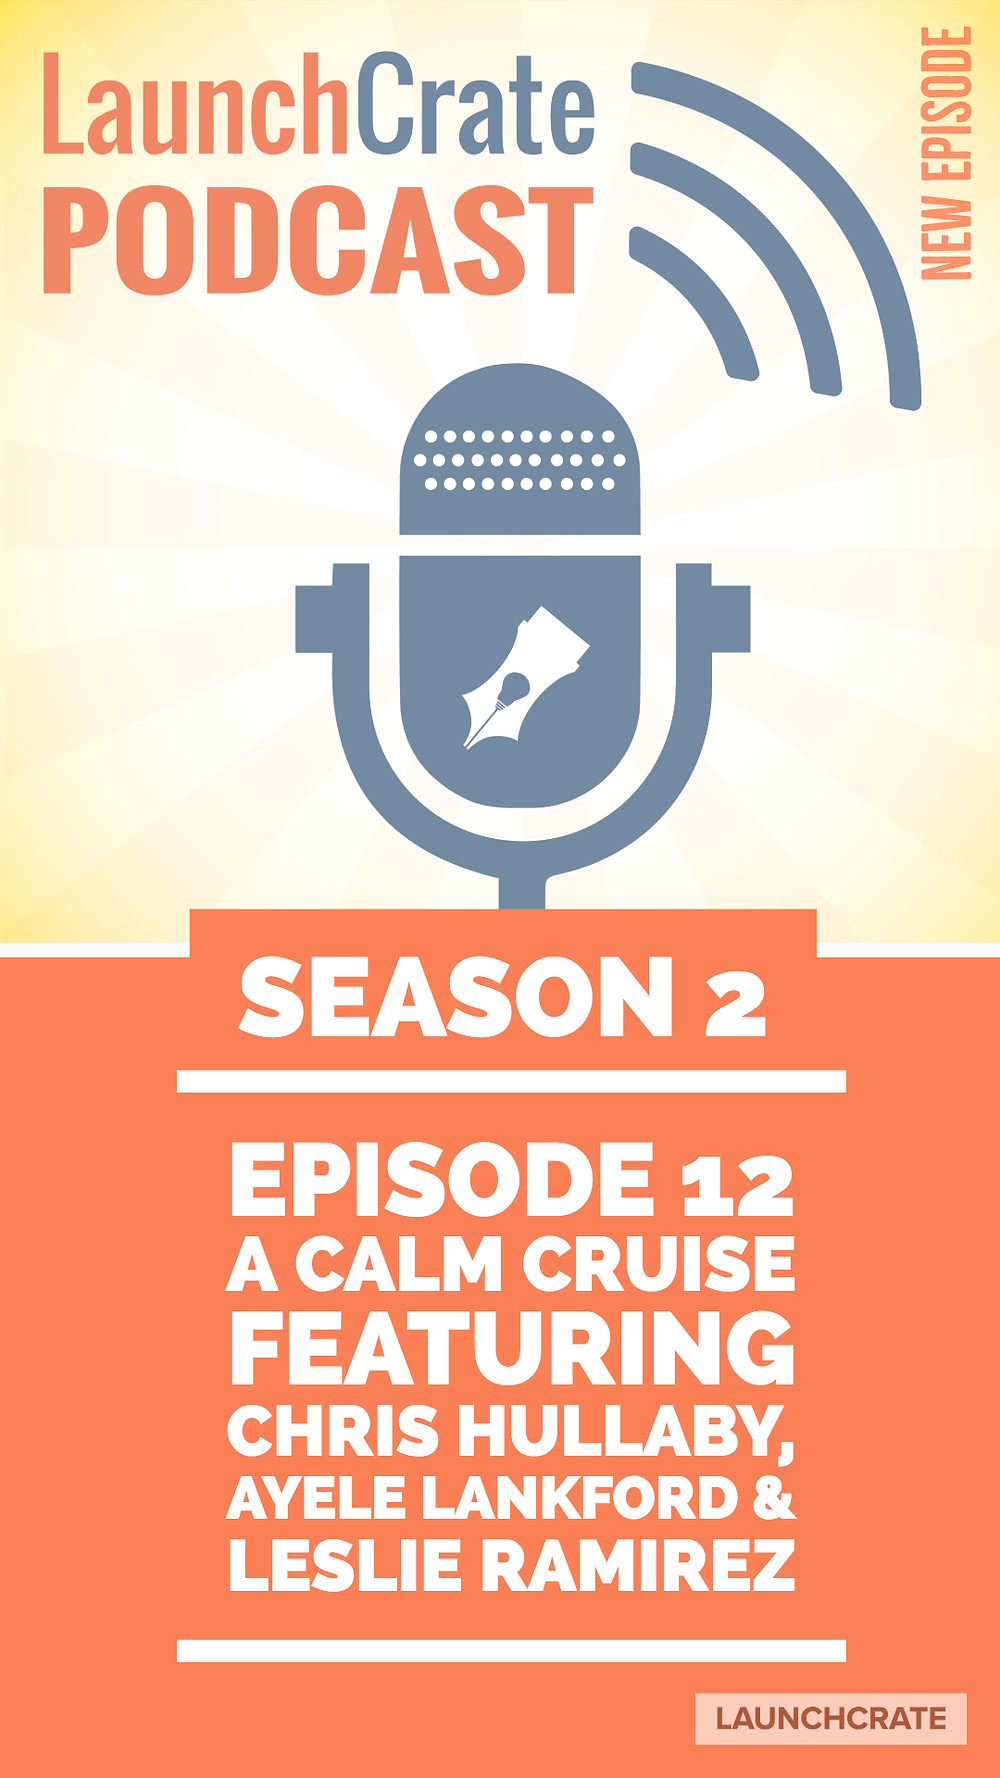 Podcast Season 2, Episode 12, with Leslie Ramirez, Chris Hullaby, and Ayele Lankford